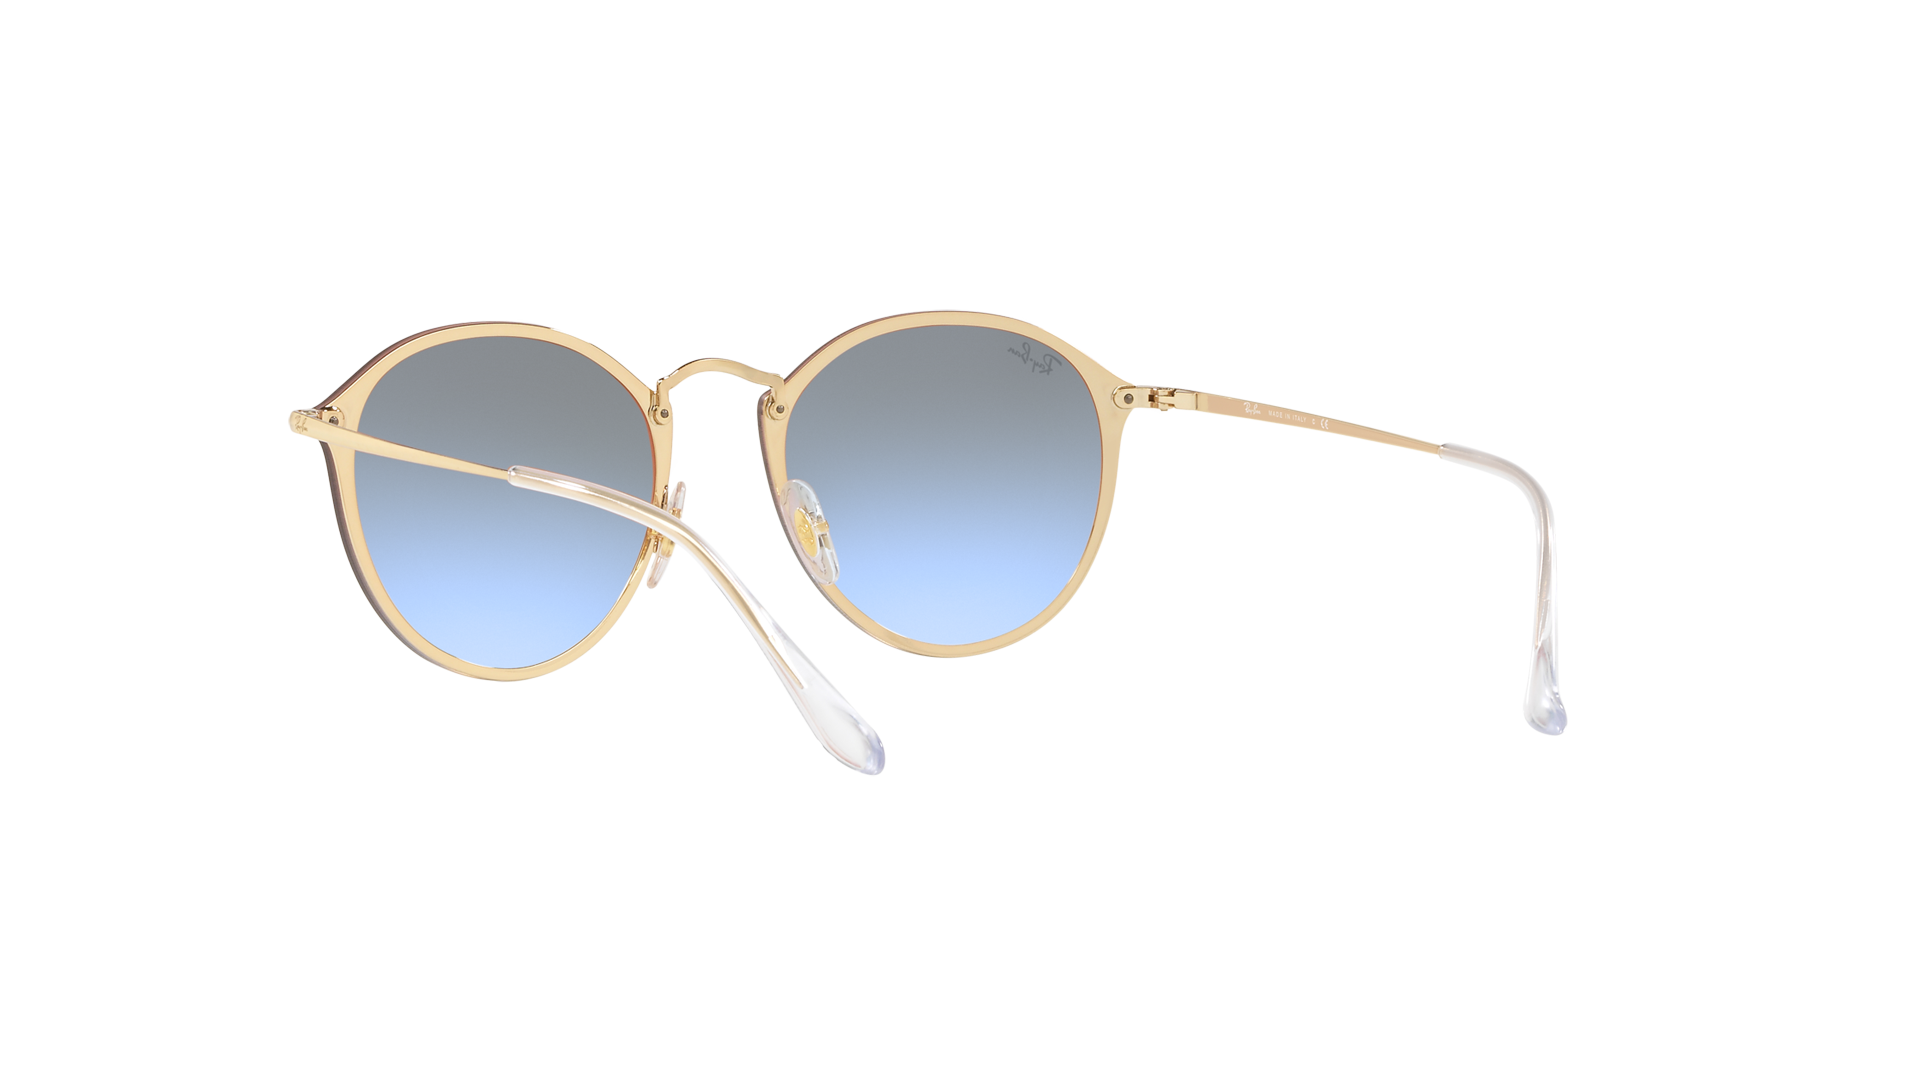 1645b66cd2 Sunglasses Ray-Ban Round Blaze Gold RB3574N 001 X0 59-14 Large Gradient  Mirror